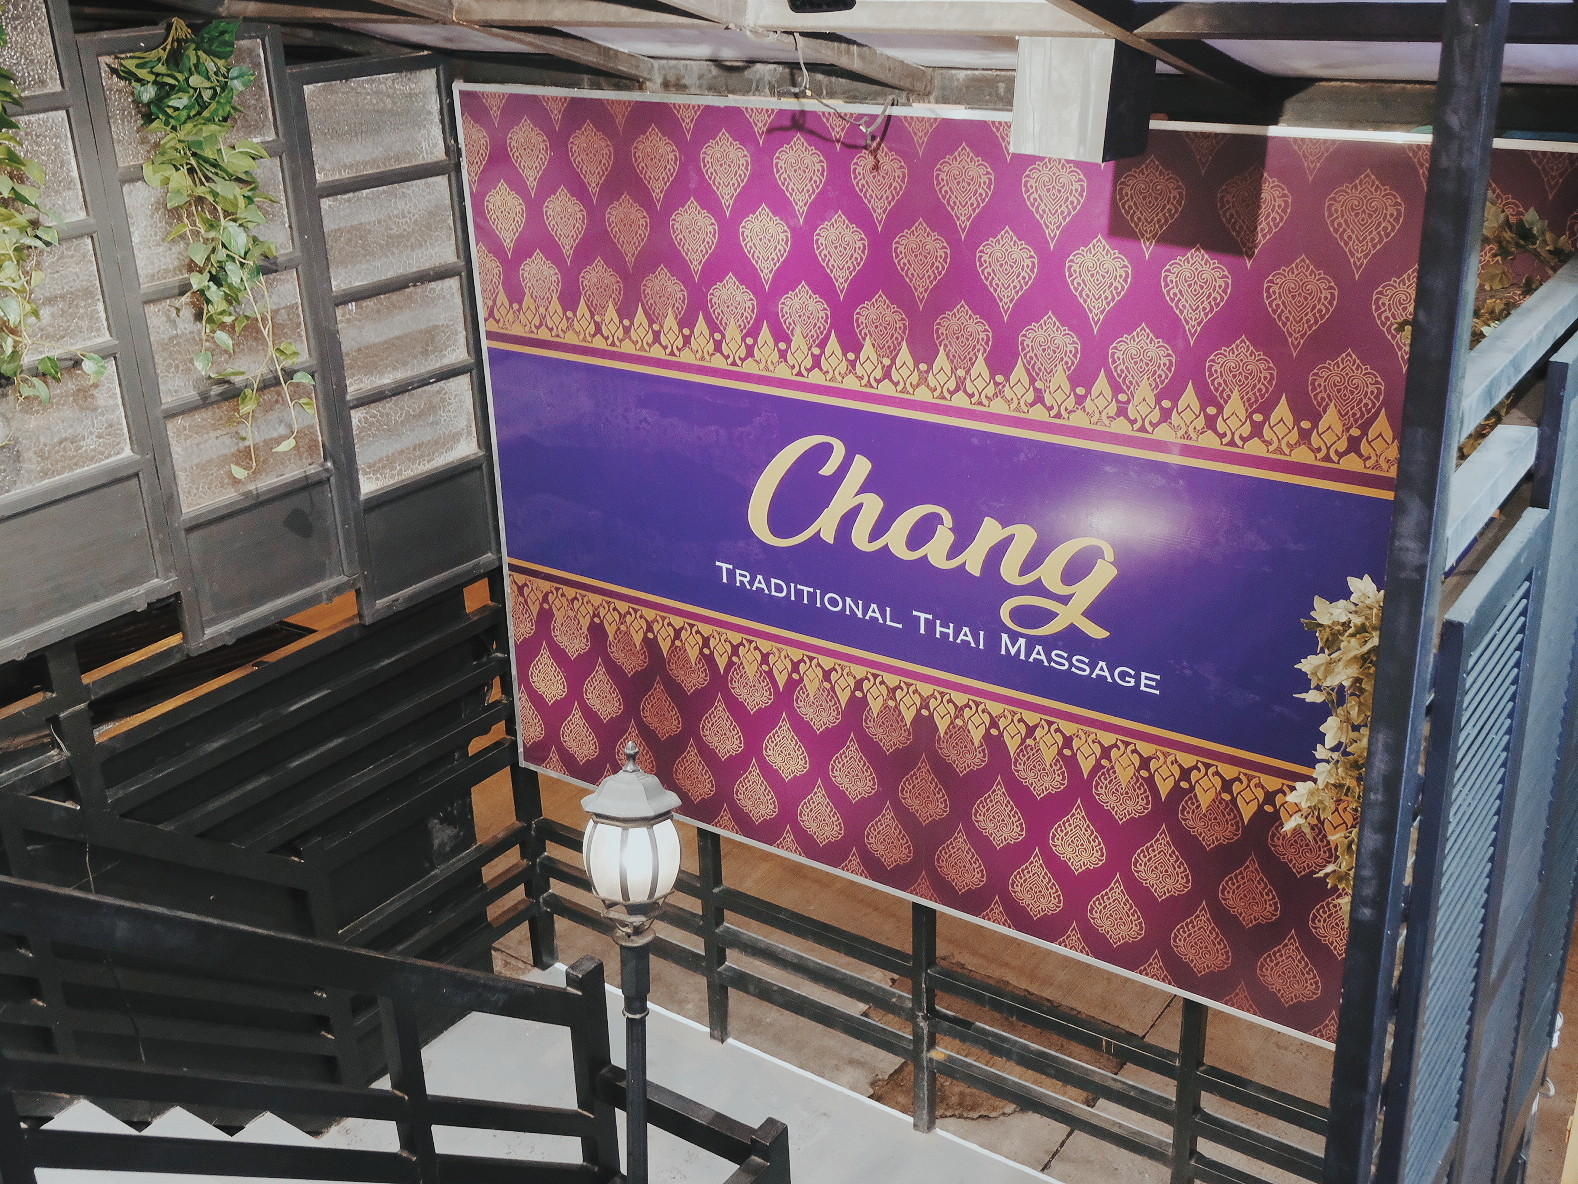 Chang Thai Massage Spa in Poblacion, Makati